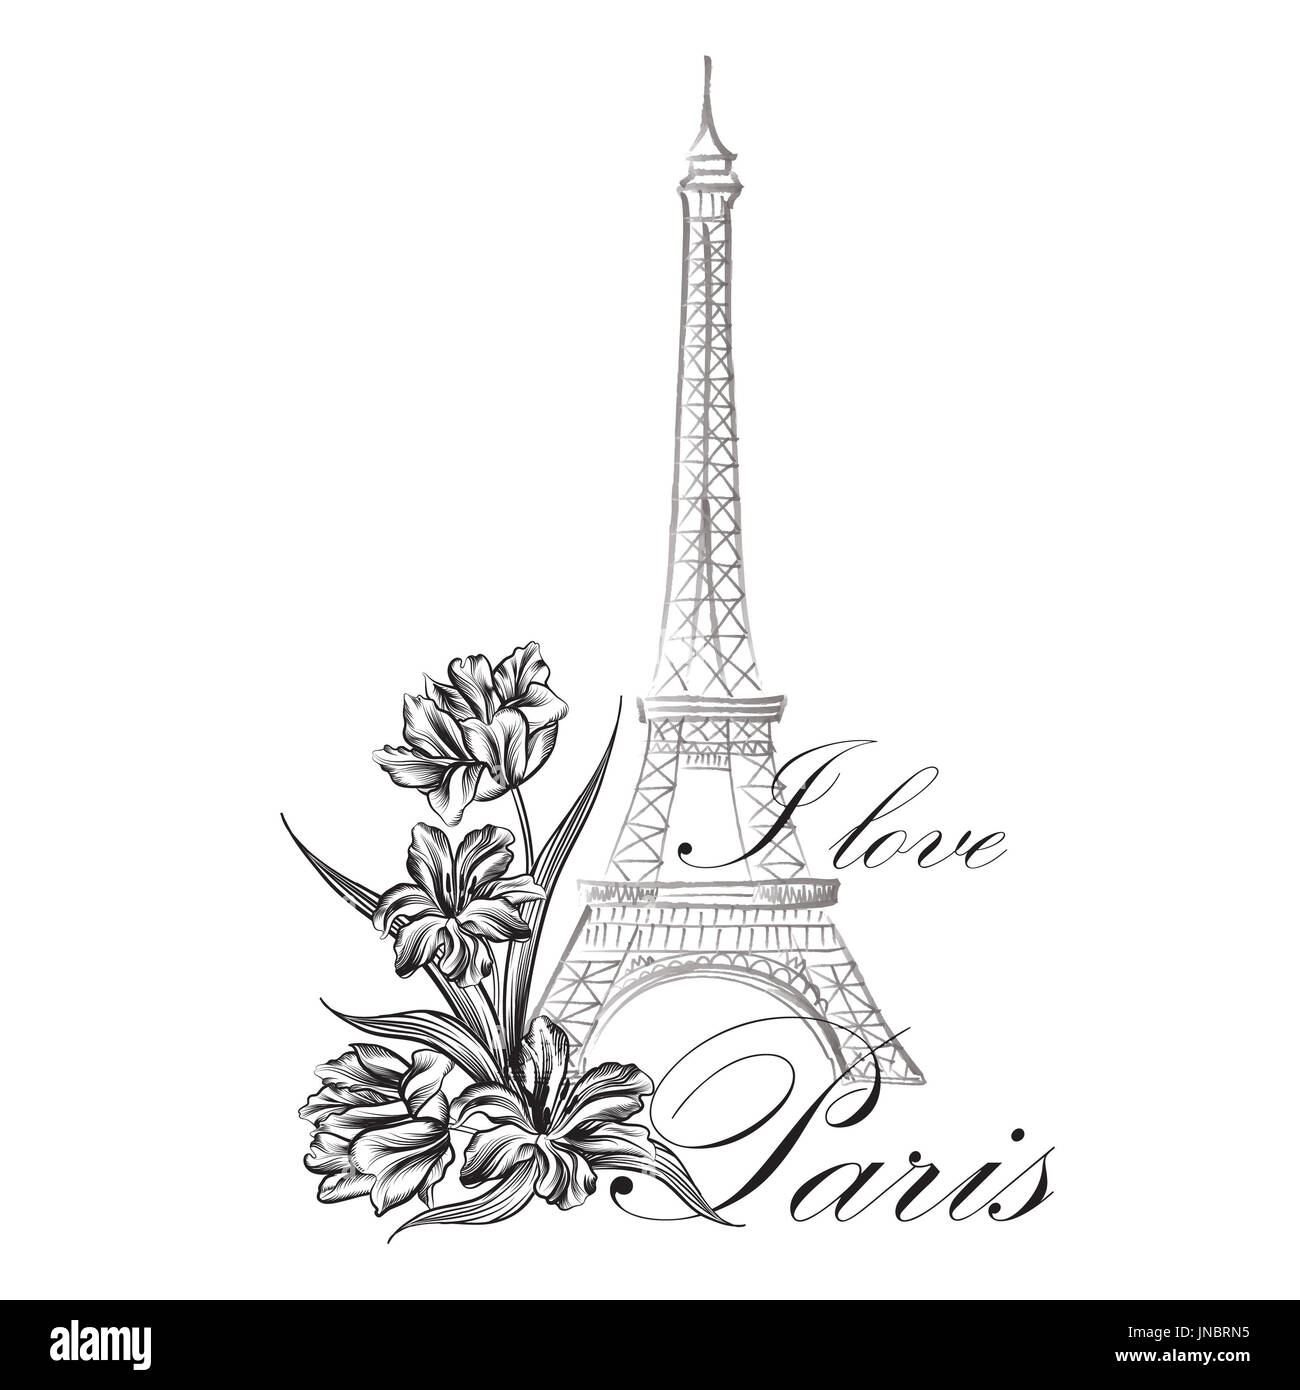 Paris sign. French famous landmark Eiffel tower. Travel France label. Paris architectural icon with lettering - Stock Image